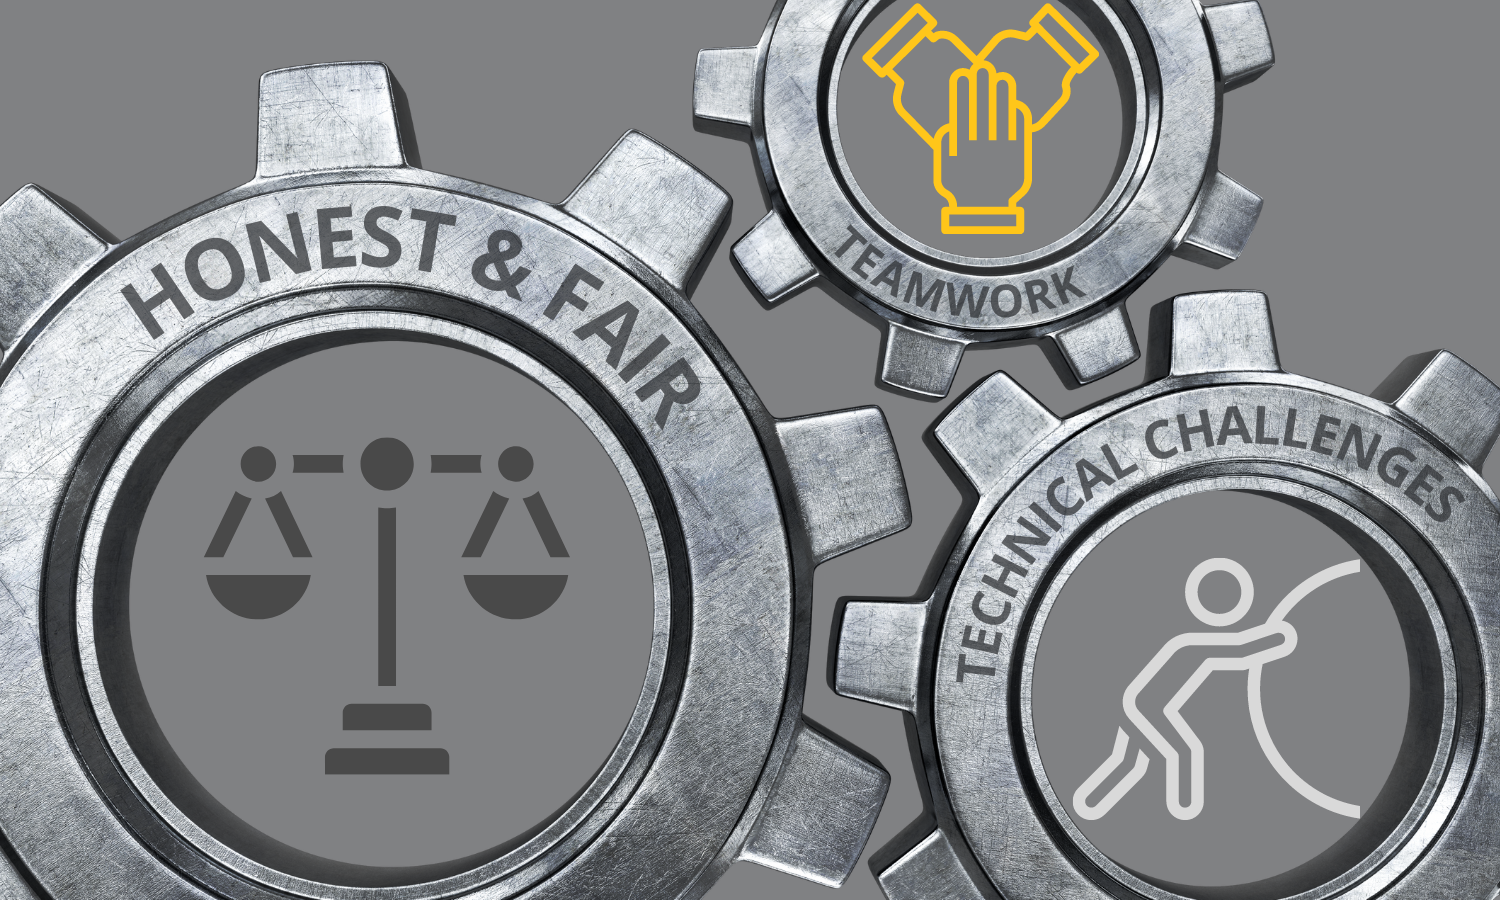 3 different sized brushed chrome gears interlocked; 1 gear labeled honest & fair with a balanced scale in the center; 1 gear labeled teamwork with 3 hands joined together in the center; 1 gear labeled technical challenges with a stick figure pushing a large stone